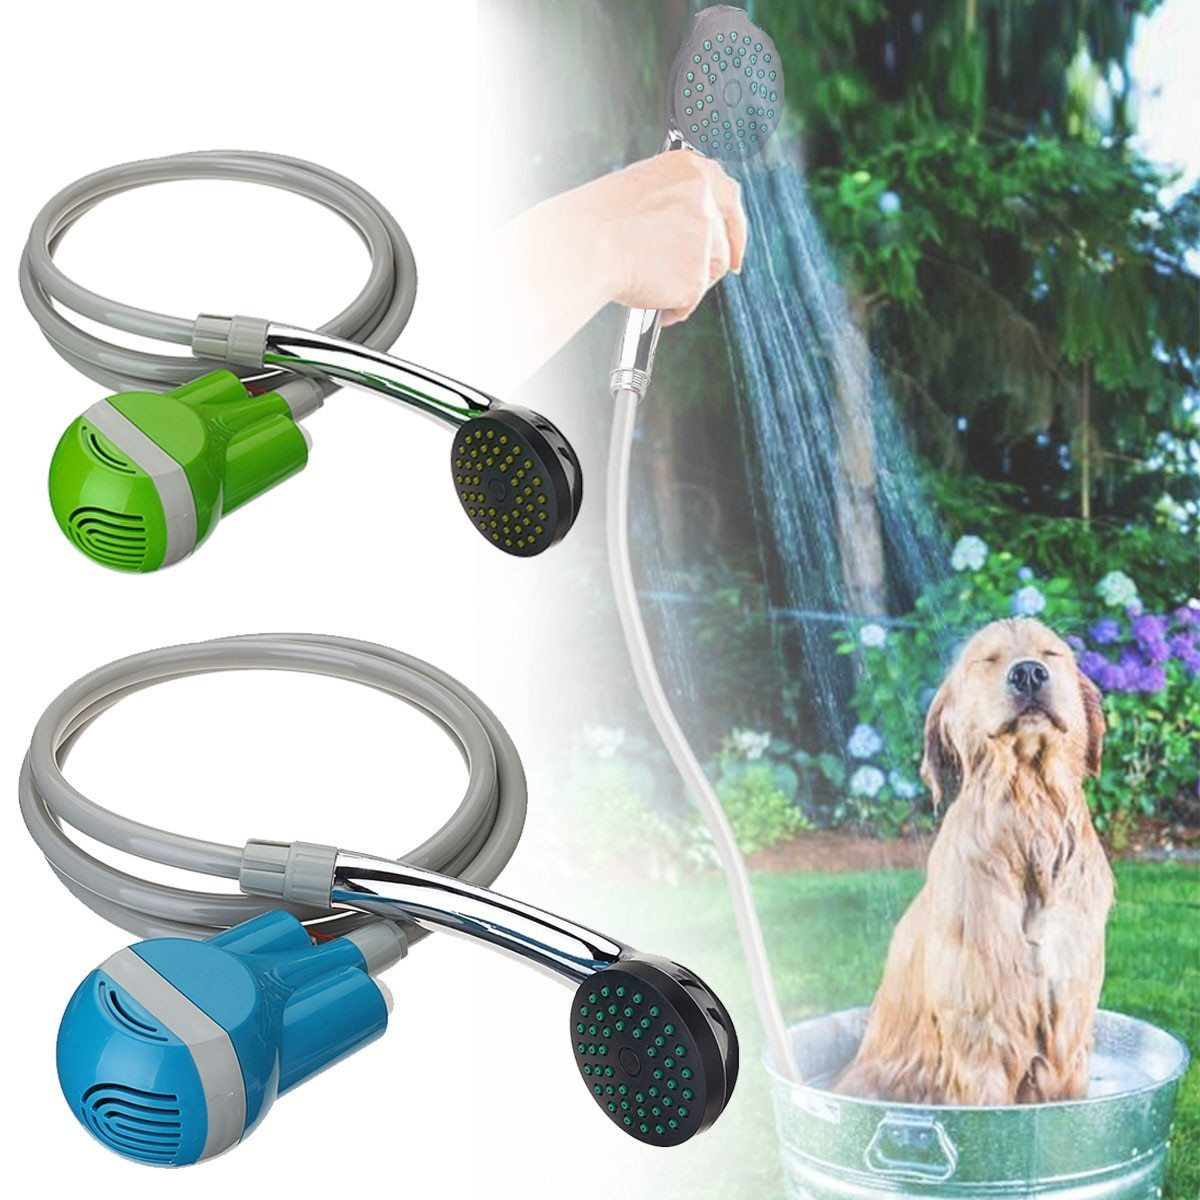 Portable Outdoor Shower Head